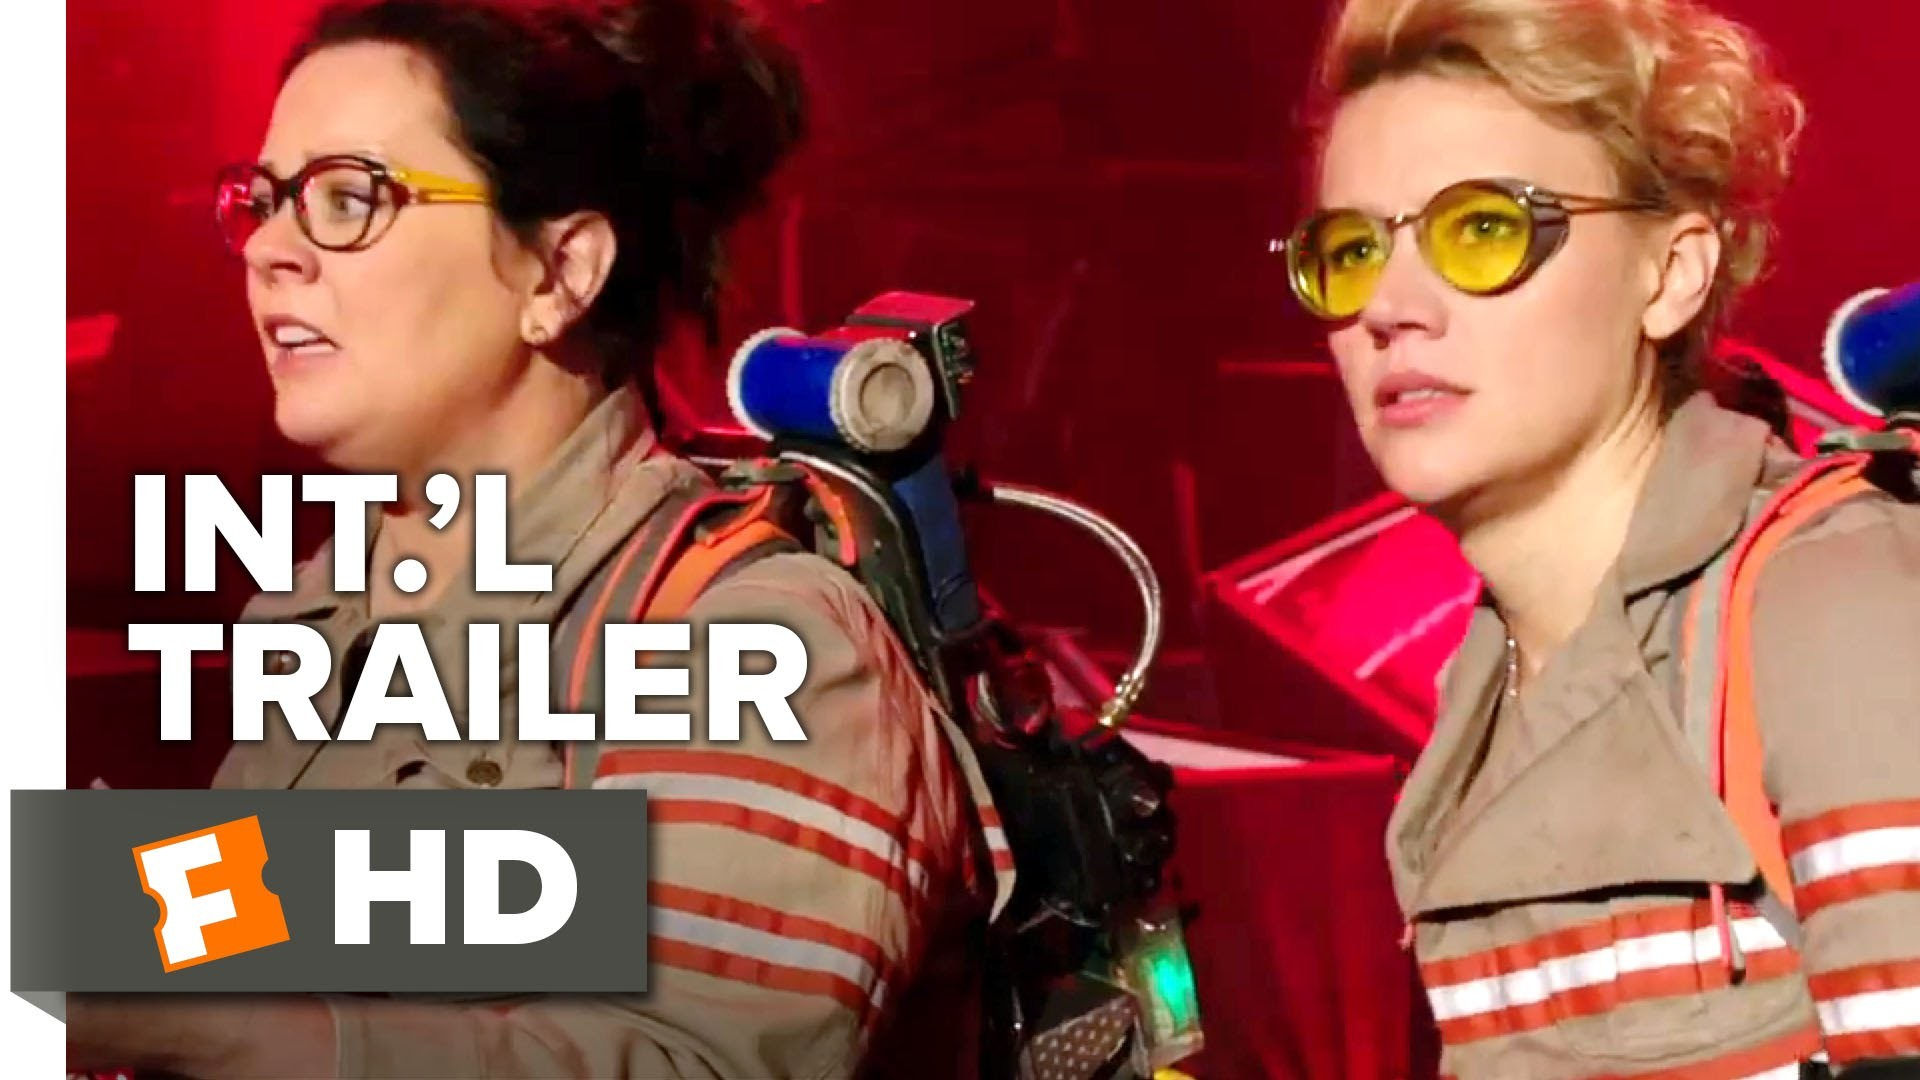 1920x1080 Ghostbusters Official International Trailer #1 (2016) - Kristen Wiig,  Melissa McCarthy Movie HD - YouTube